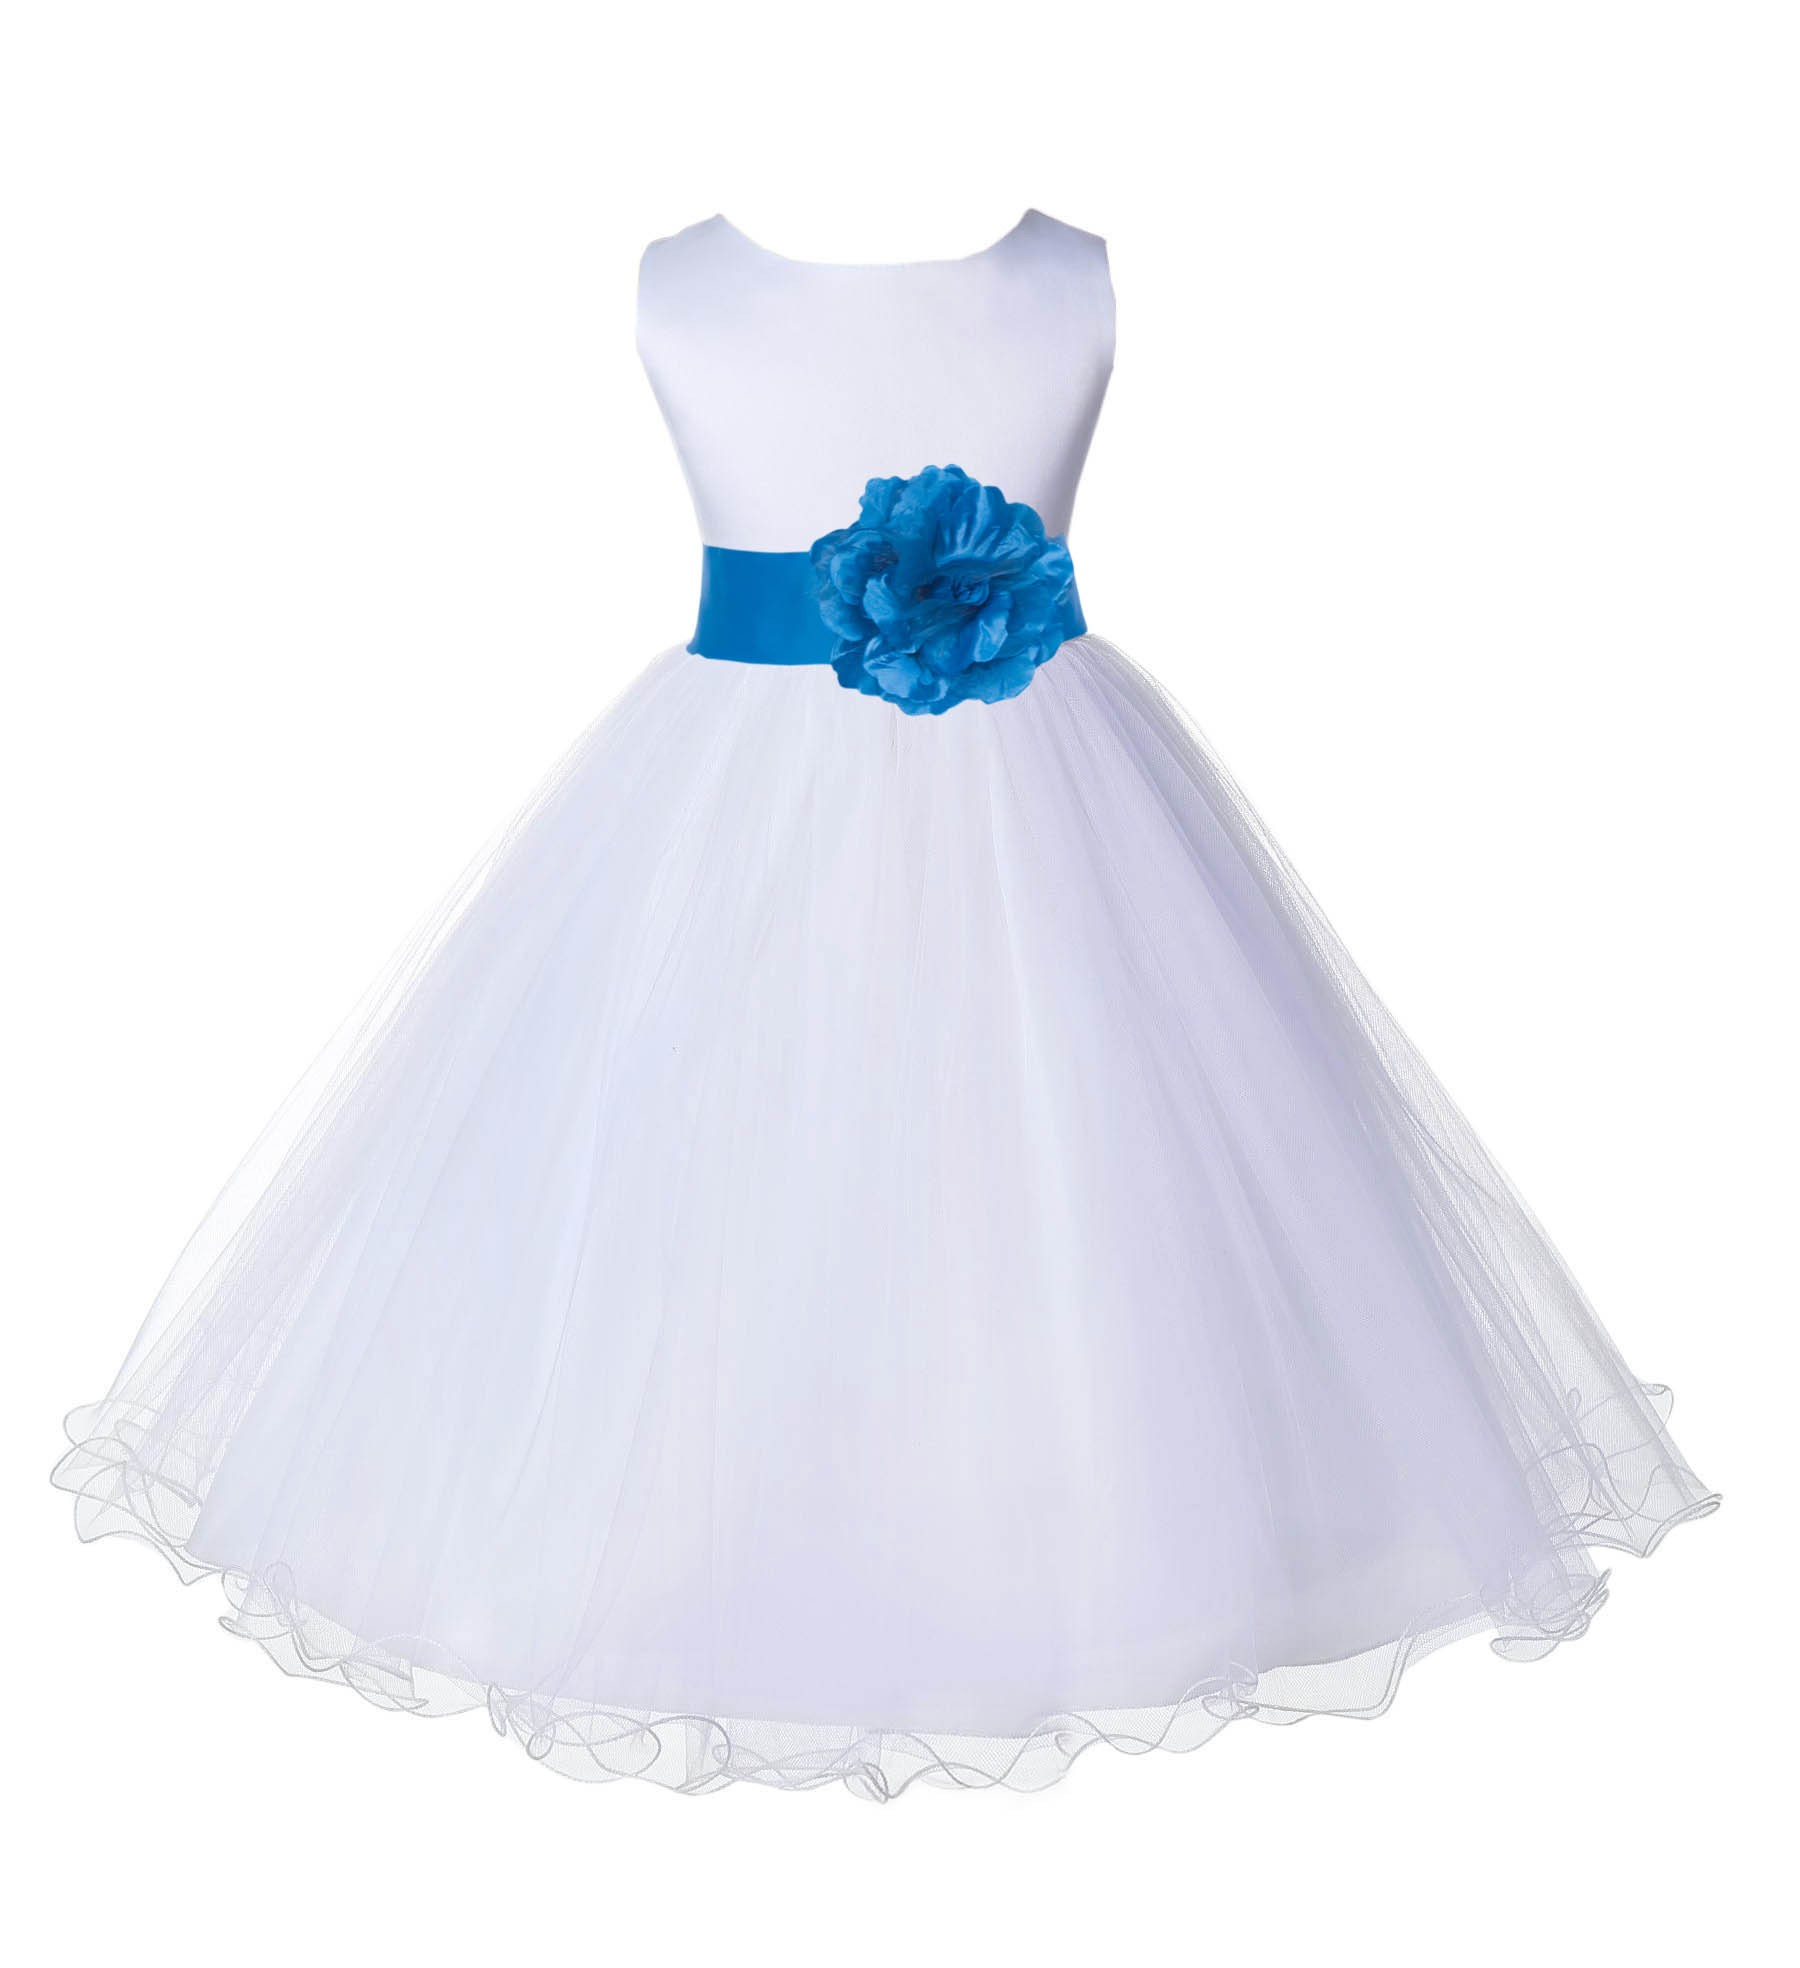 White/Malibu Tulle Rattail Edge Flower Girl Dress Wedding Bridesmaid 829T